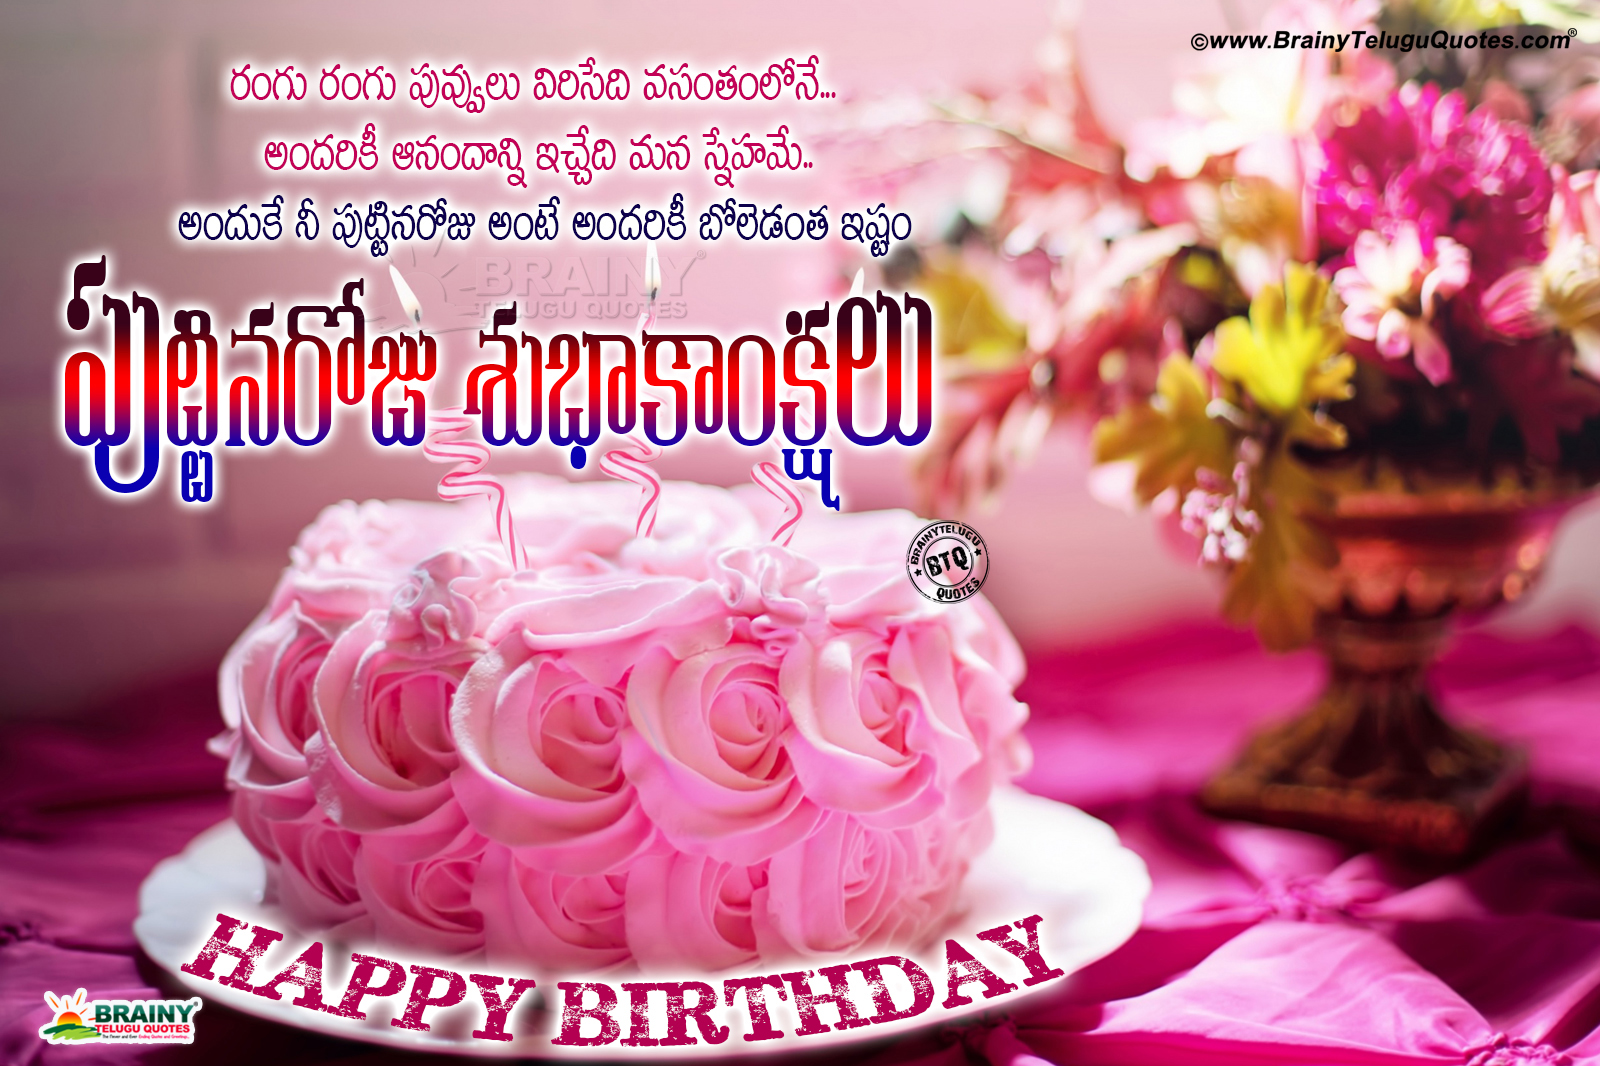 Latest Telugu Heart Touching Happy Birthday Greetings Hd Wallpapers Free Download In 4k Brainysms